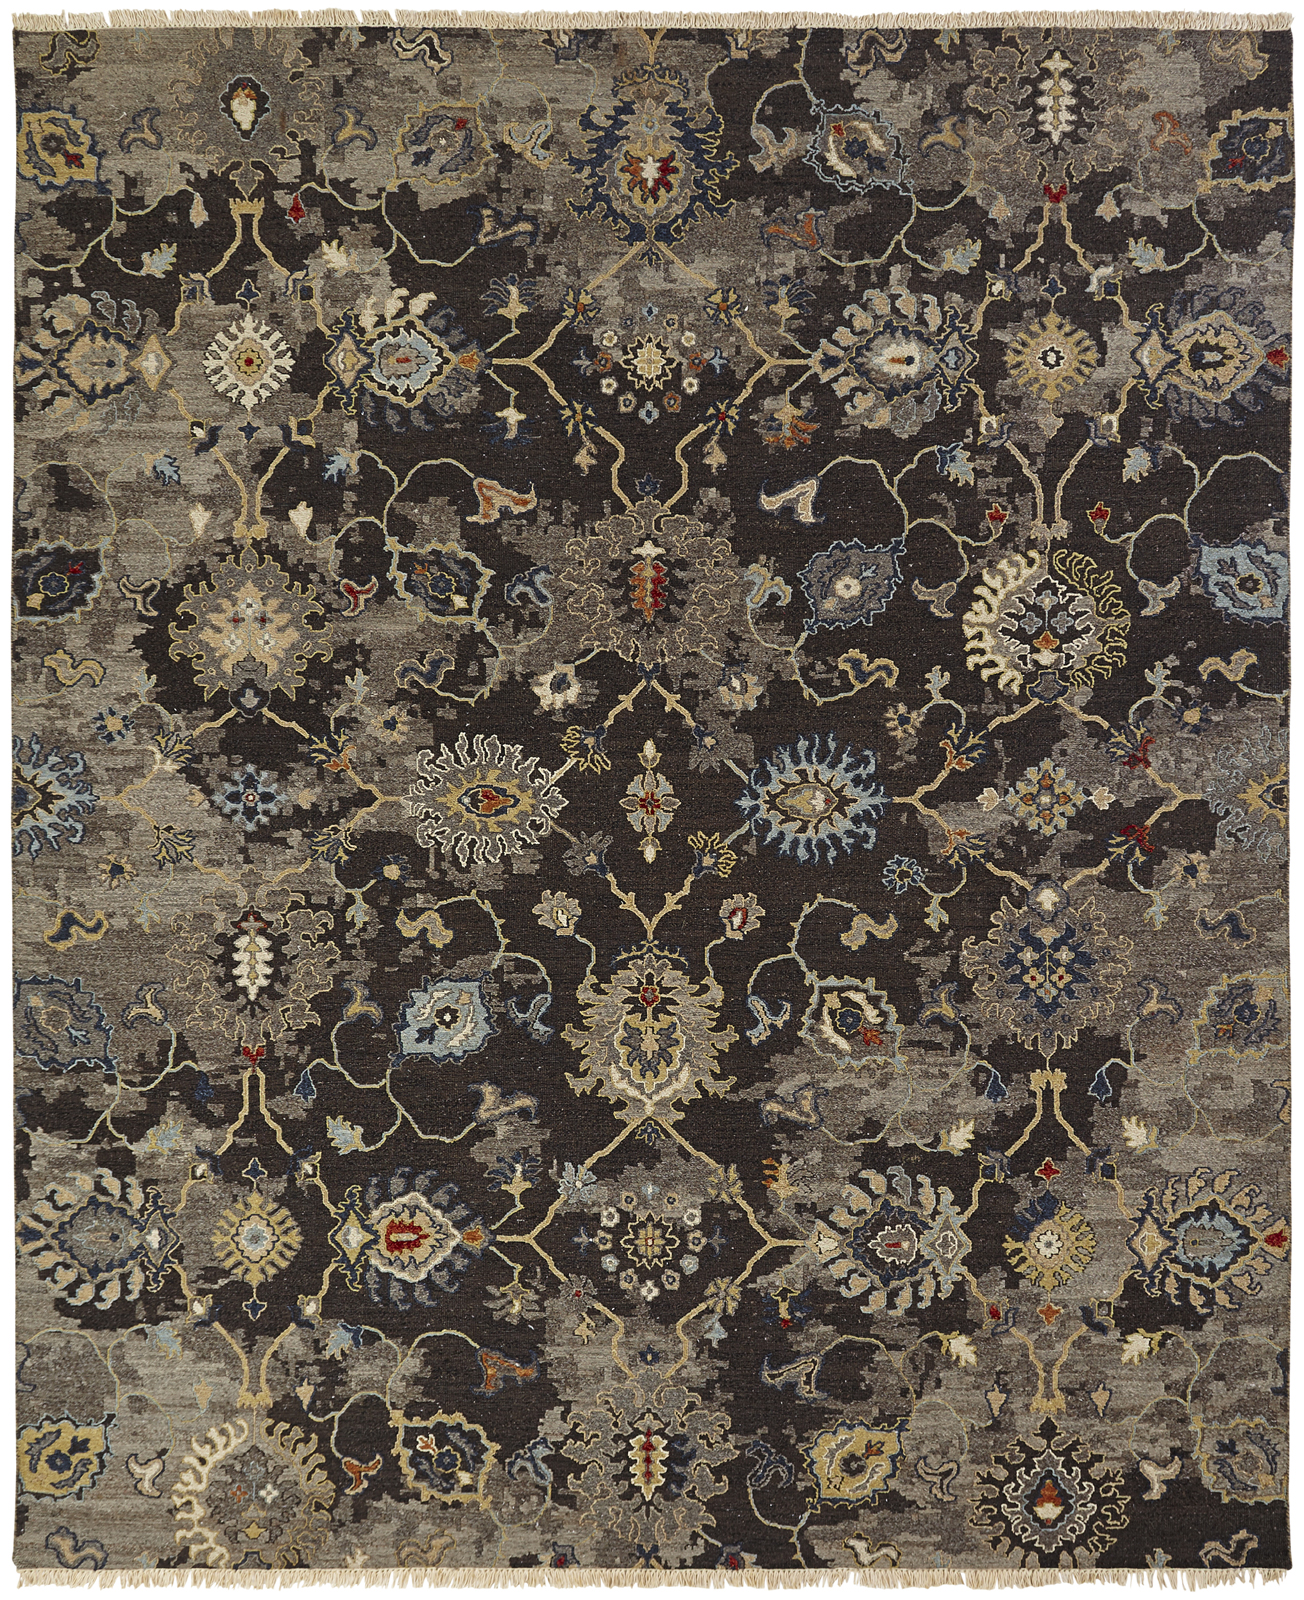 Hand-knotted area rug with black background & vine pattern.